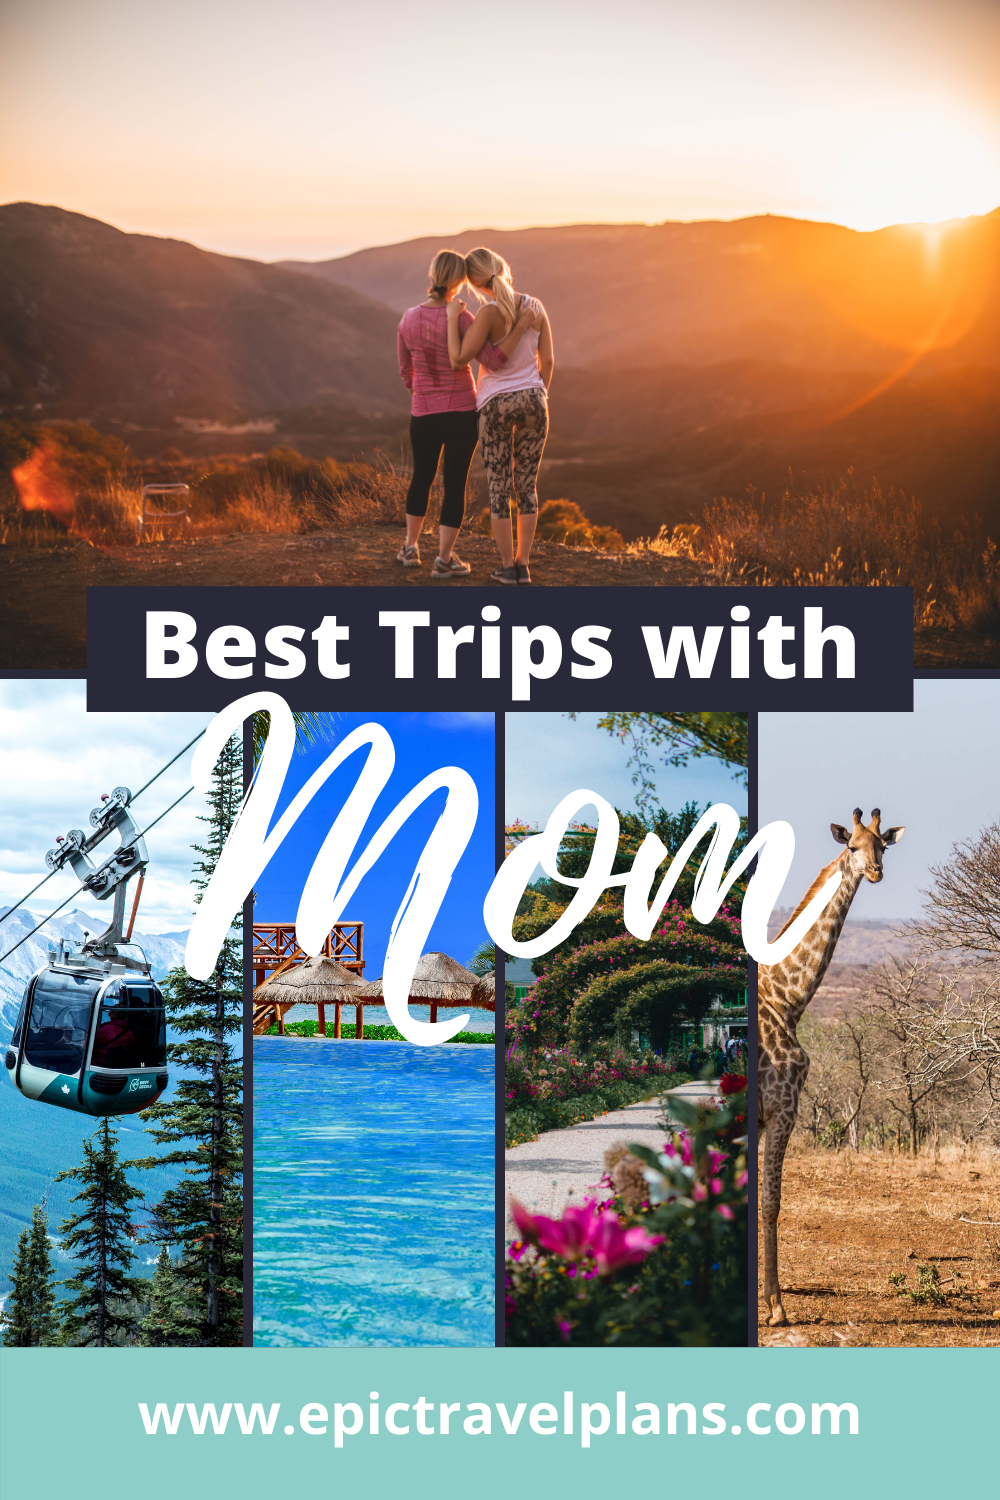 Best trips with mom, mother daughter trips of a lifetime, road trips, weekend trips for mom